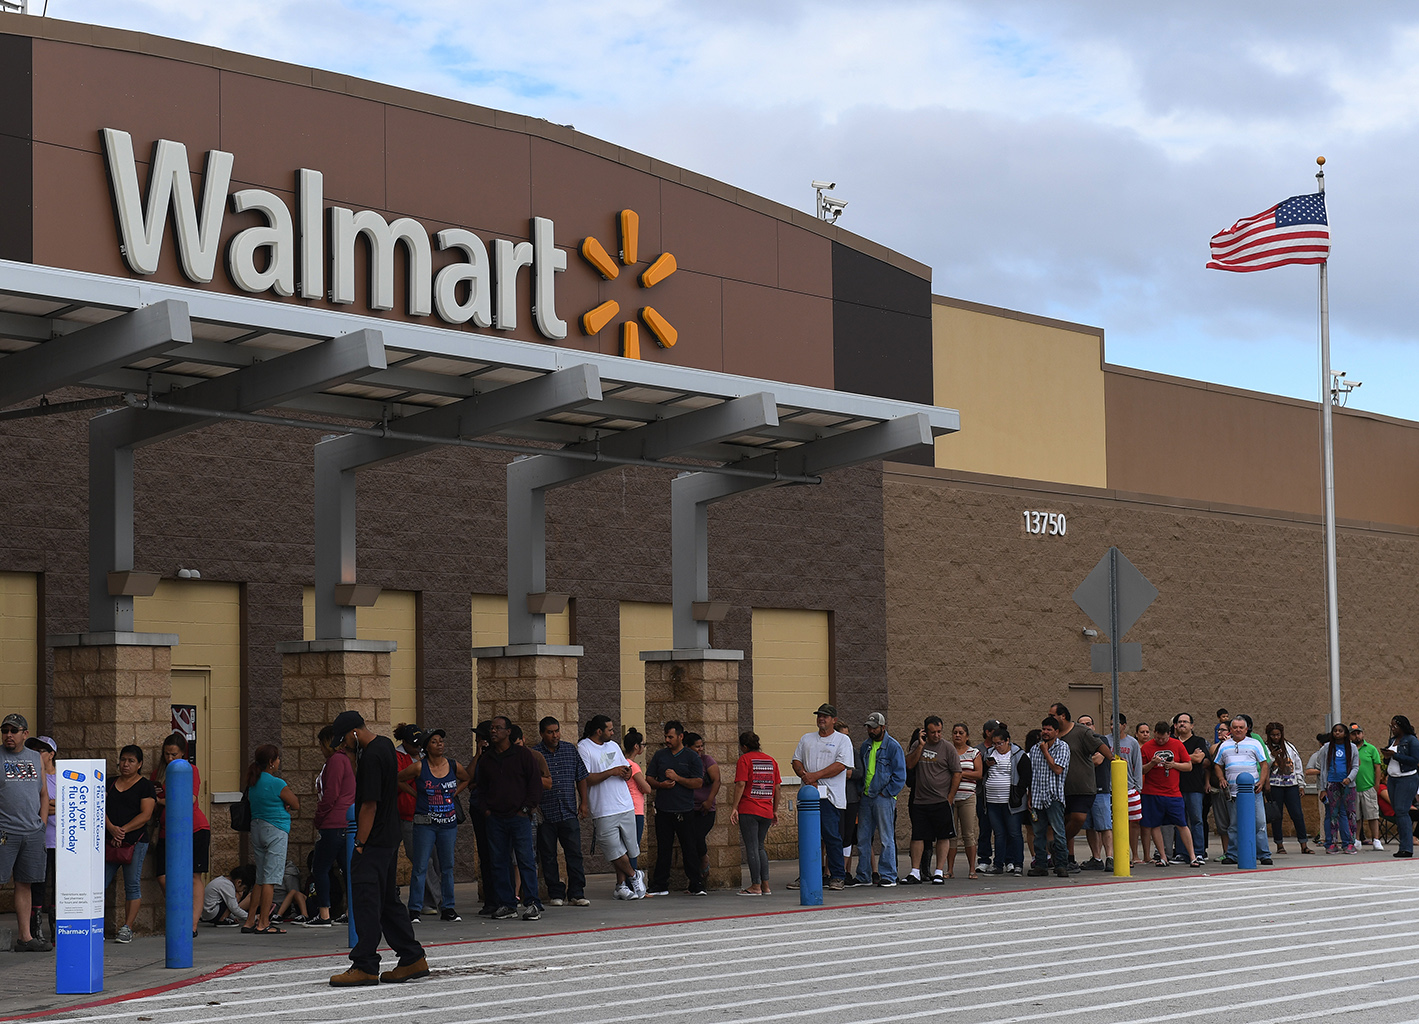 Walmart to launch 'Black Friday' deals early